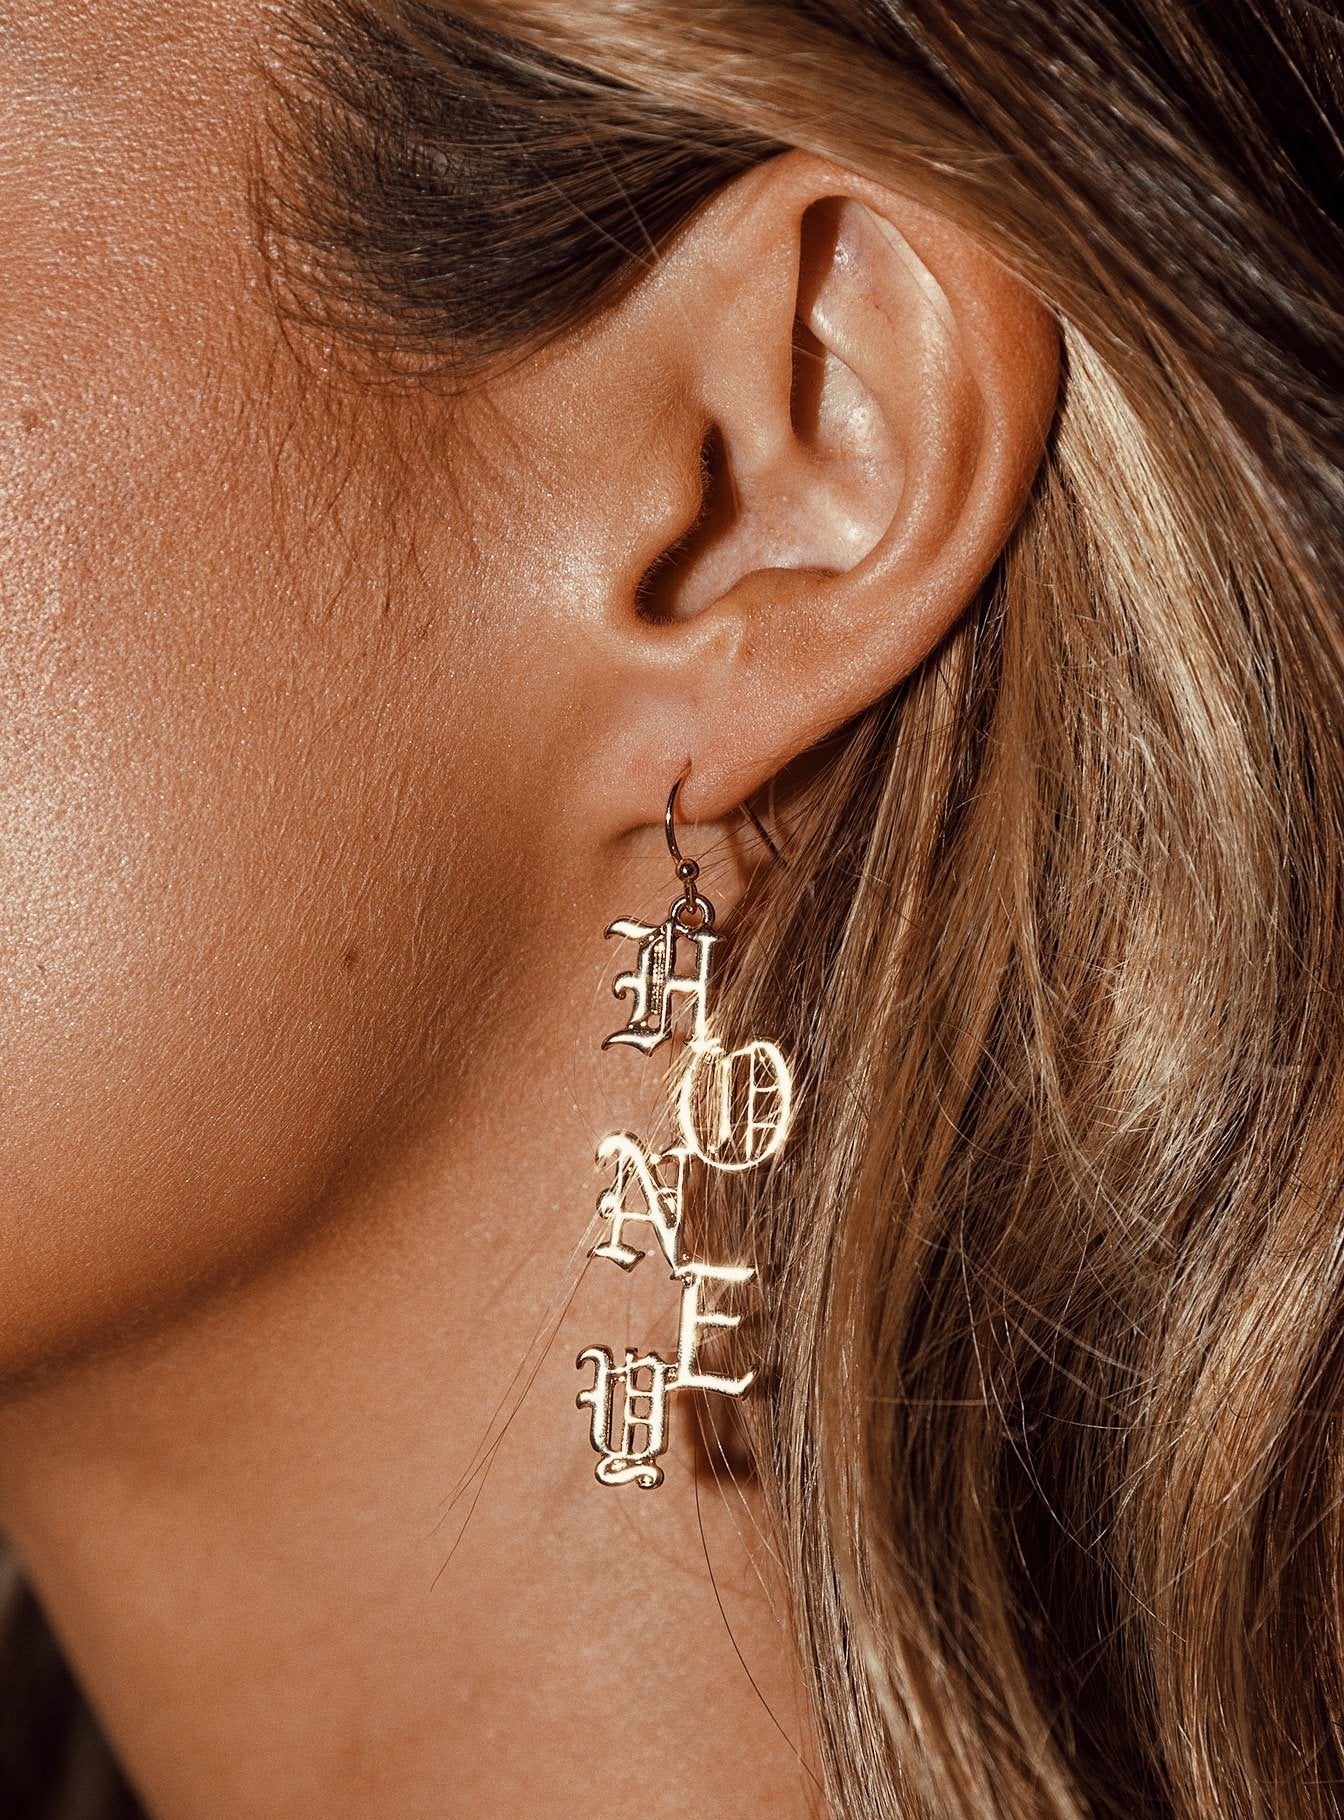 Jordana Honey Earrings